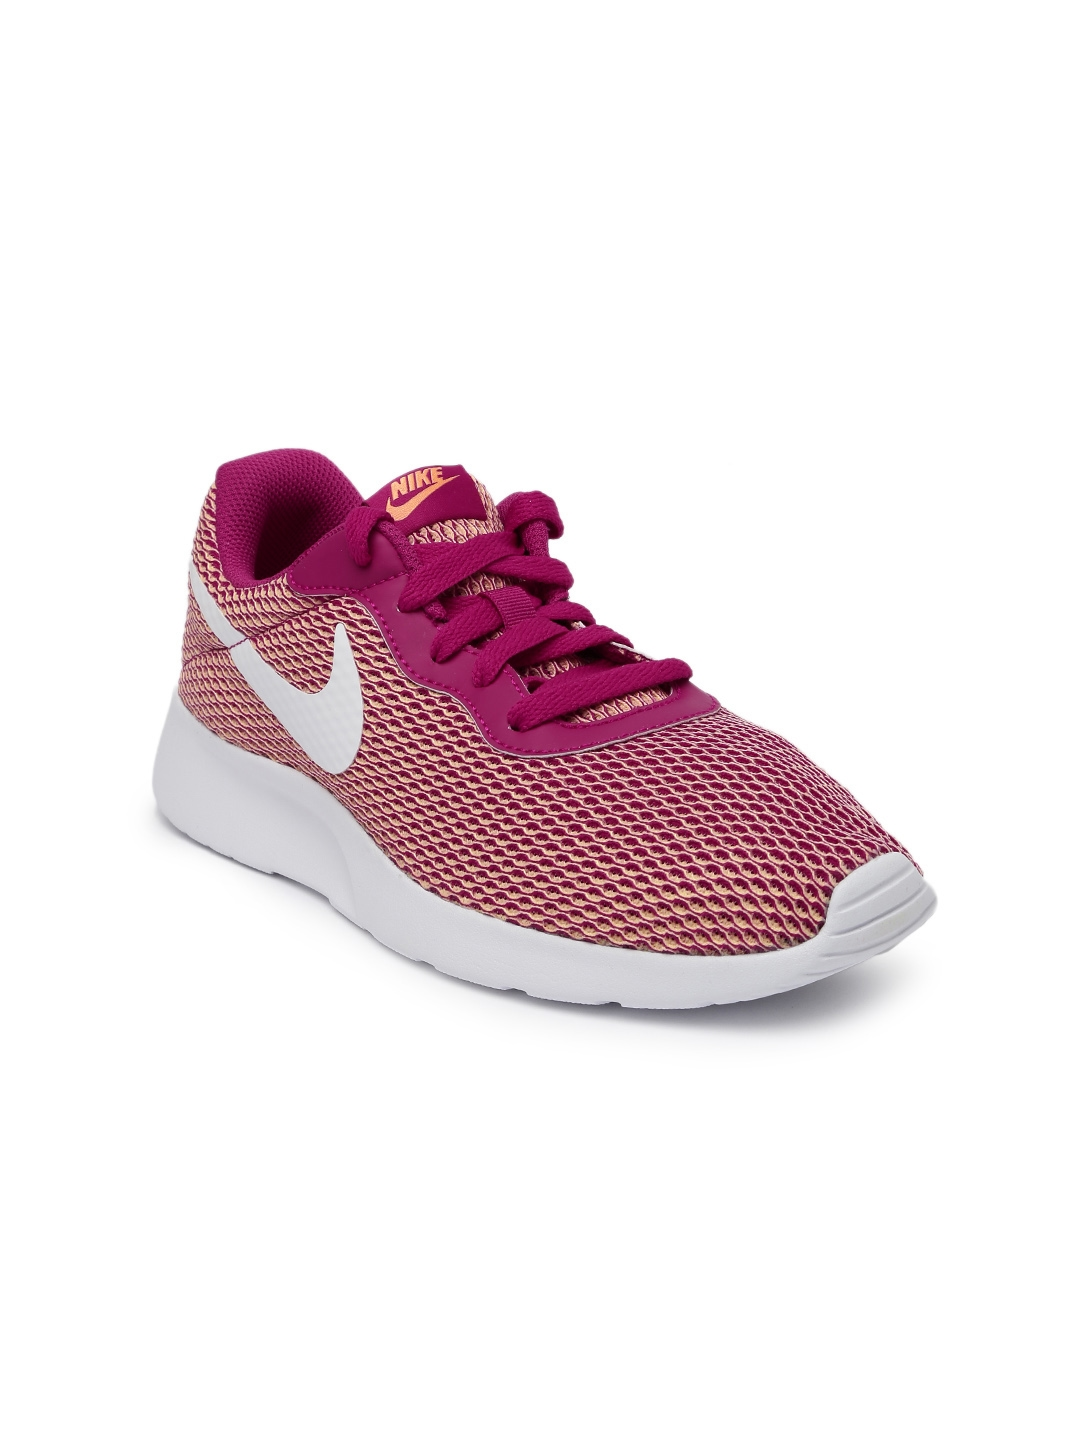 ab6f21ccbc21b5 Buy Nike Women Pink   Peach Coloured Tanjun SE Sneakers - Casual ...